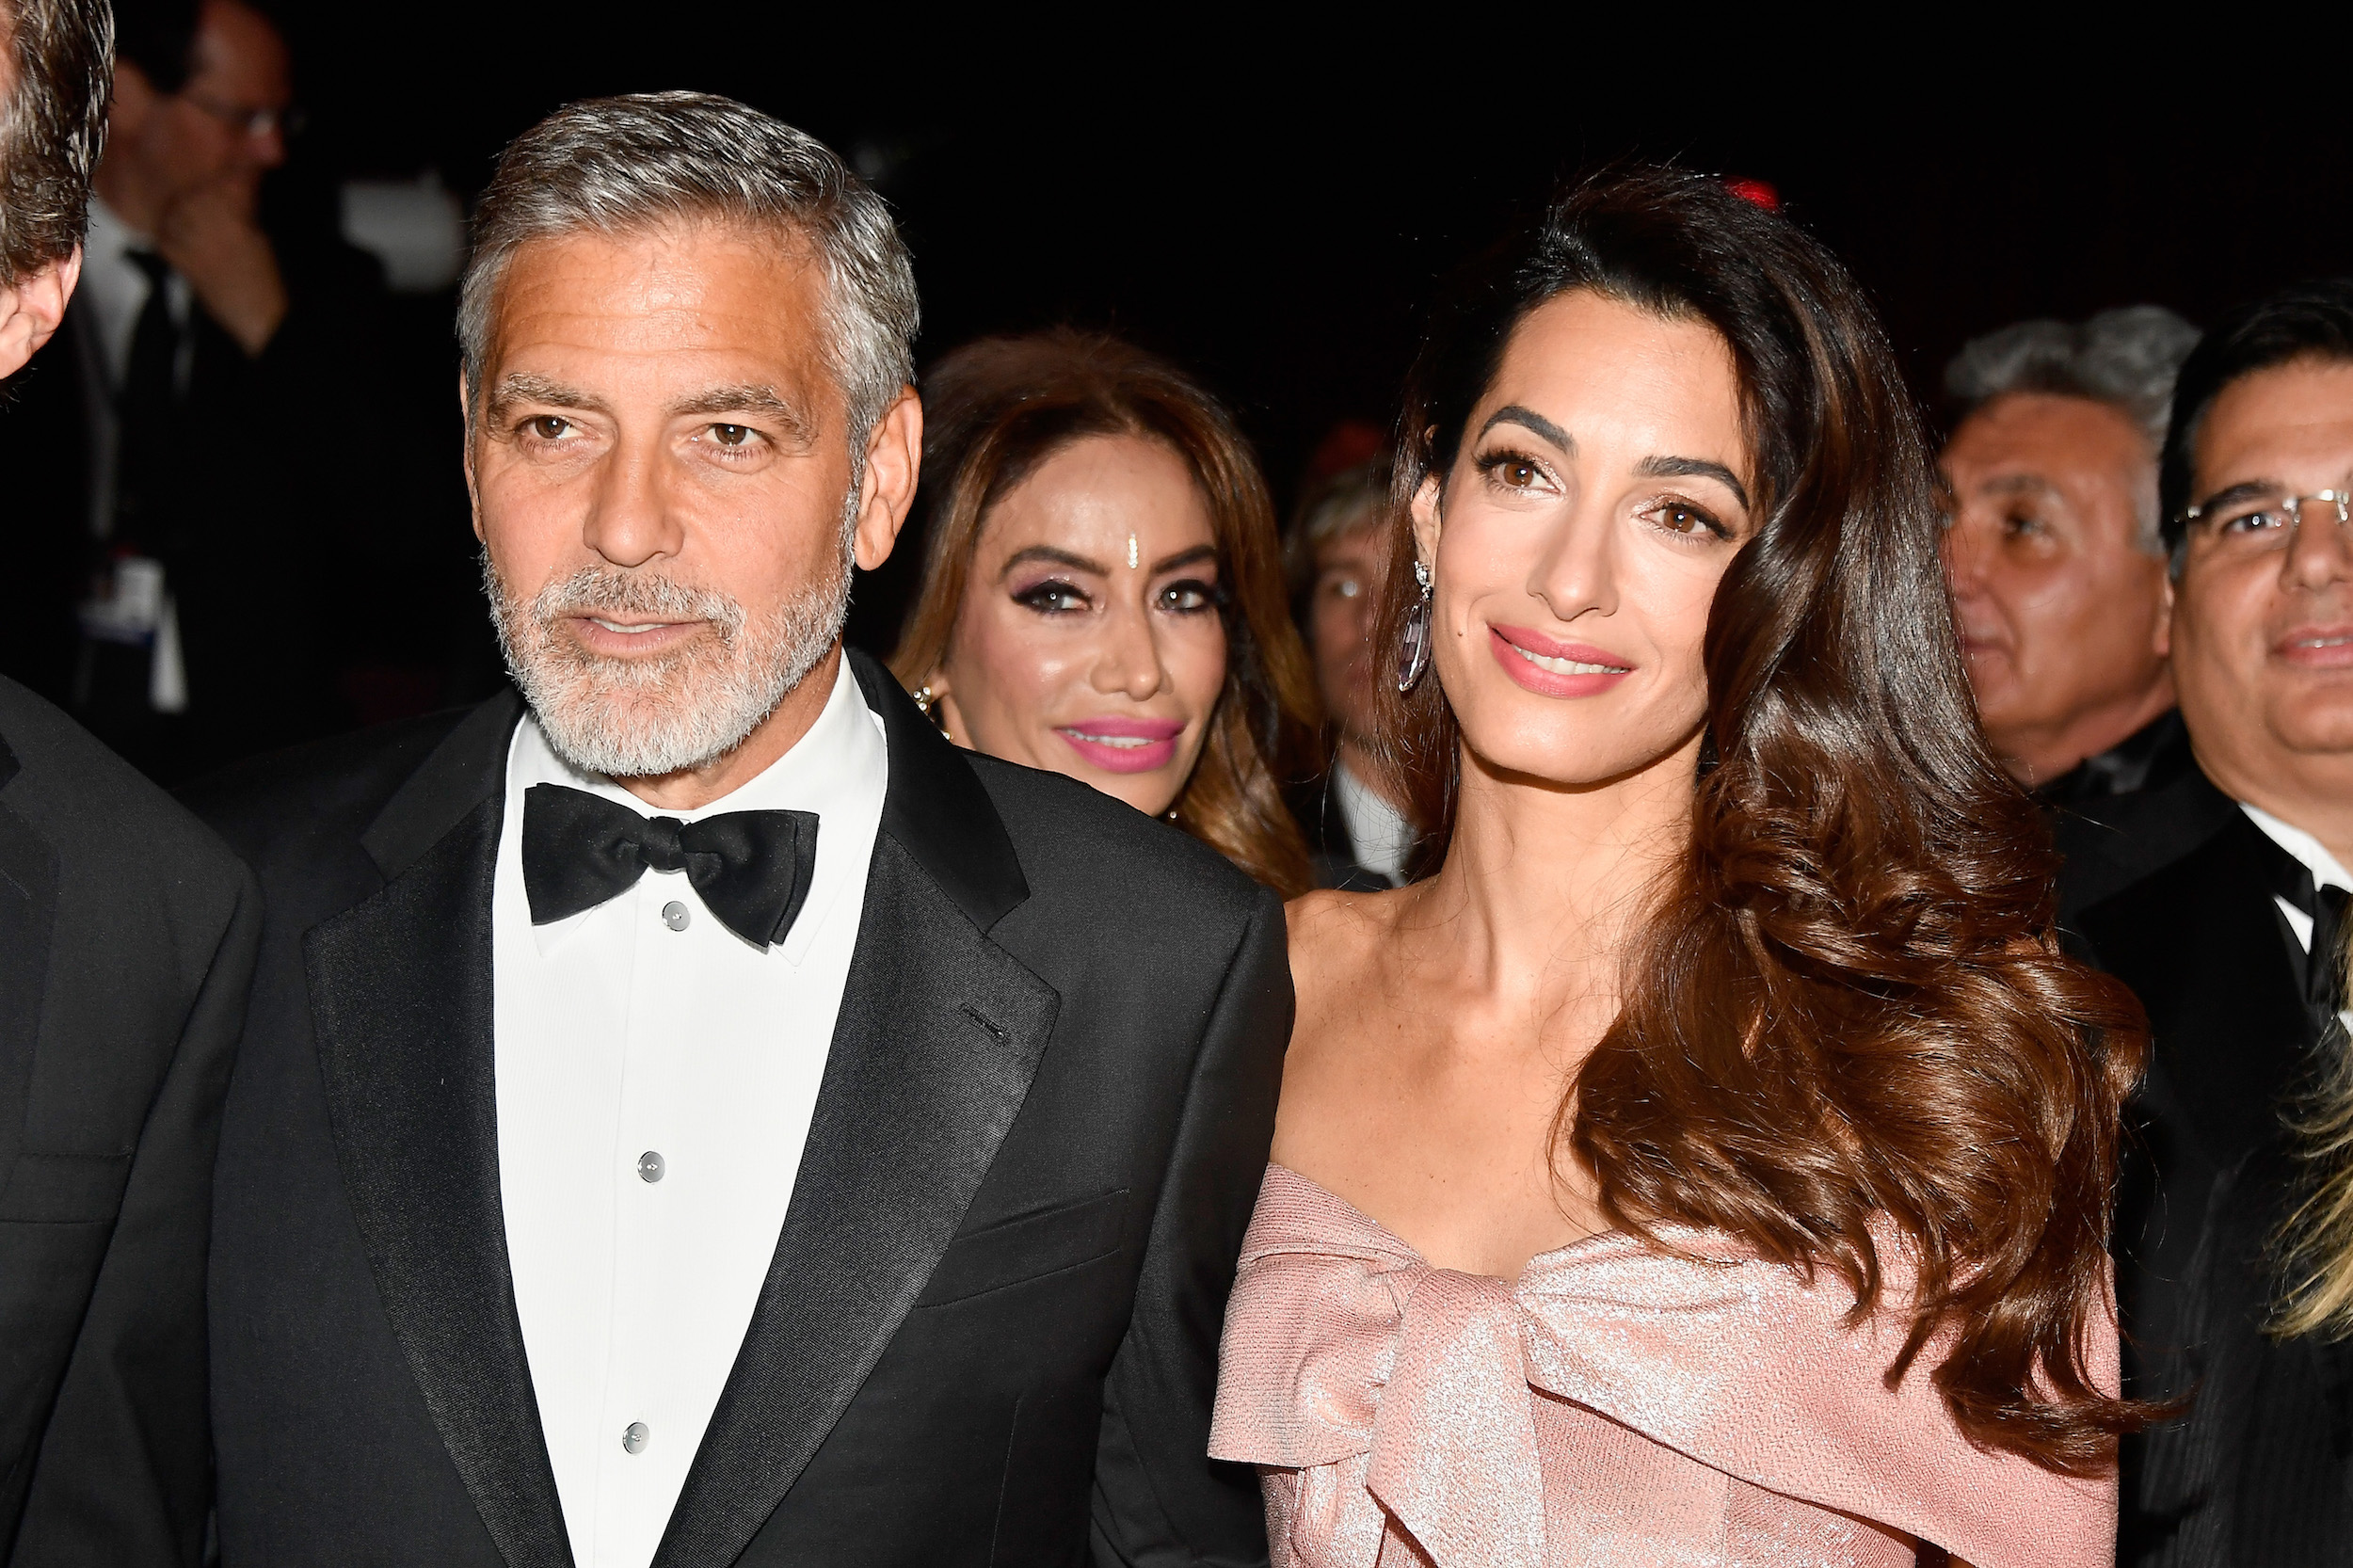 Amal Clooney premiata con il Global Citizen of the Year